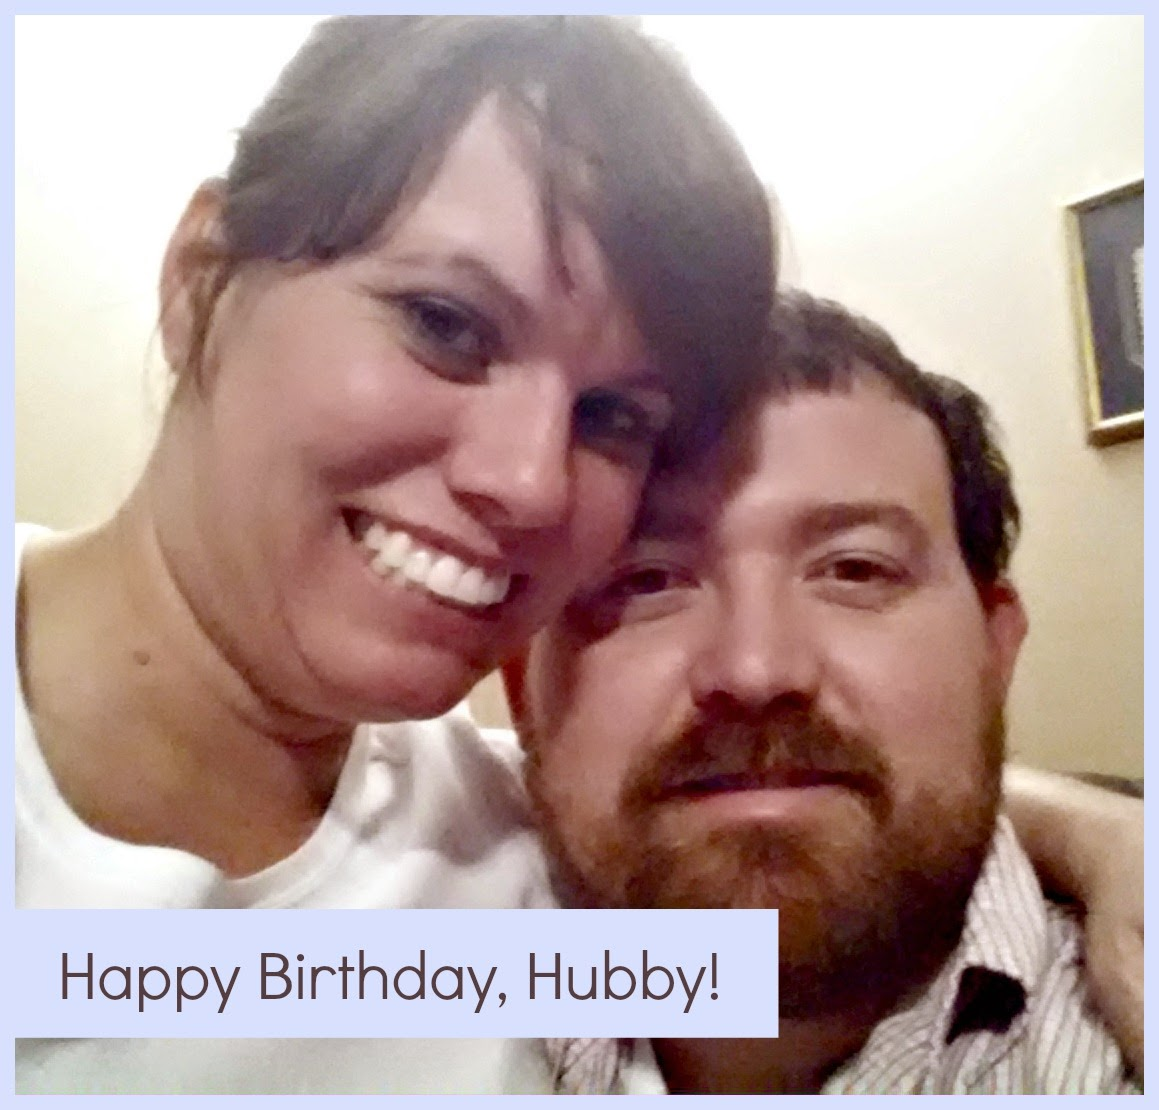 Happy Birthday, Hubby!